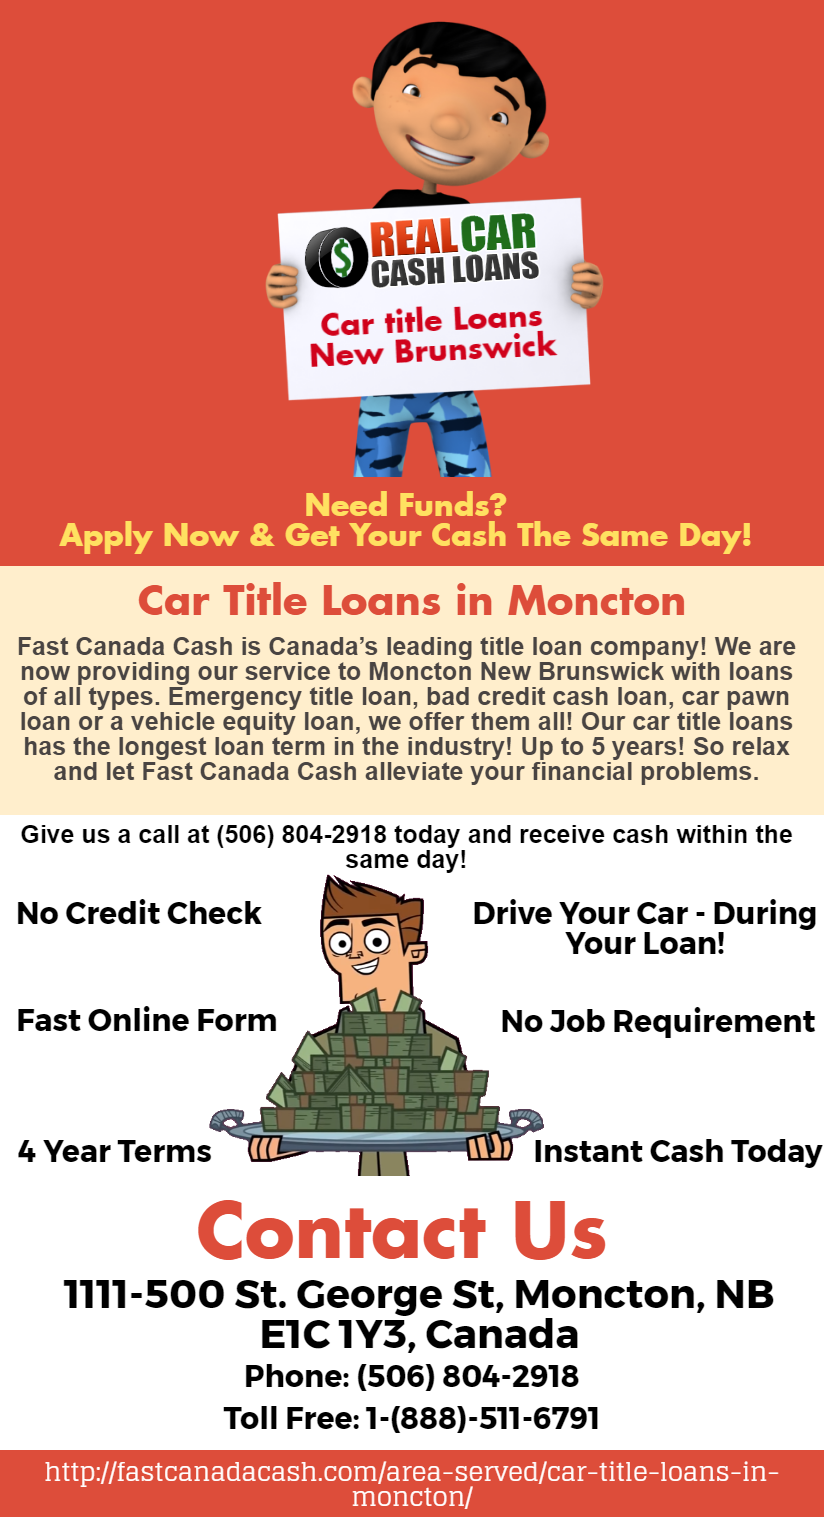 Fastcanadacash Offering You Car Title Loans In New Brunswick At